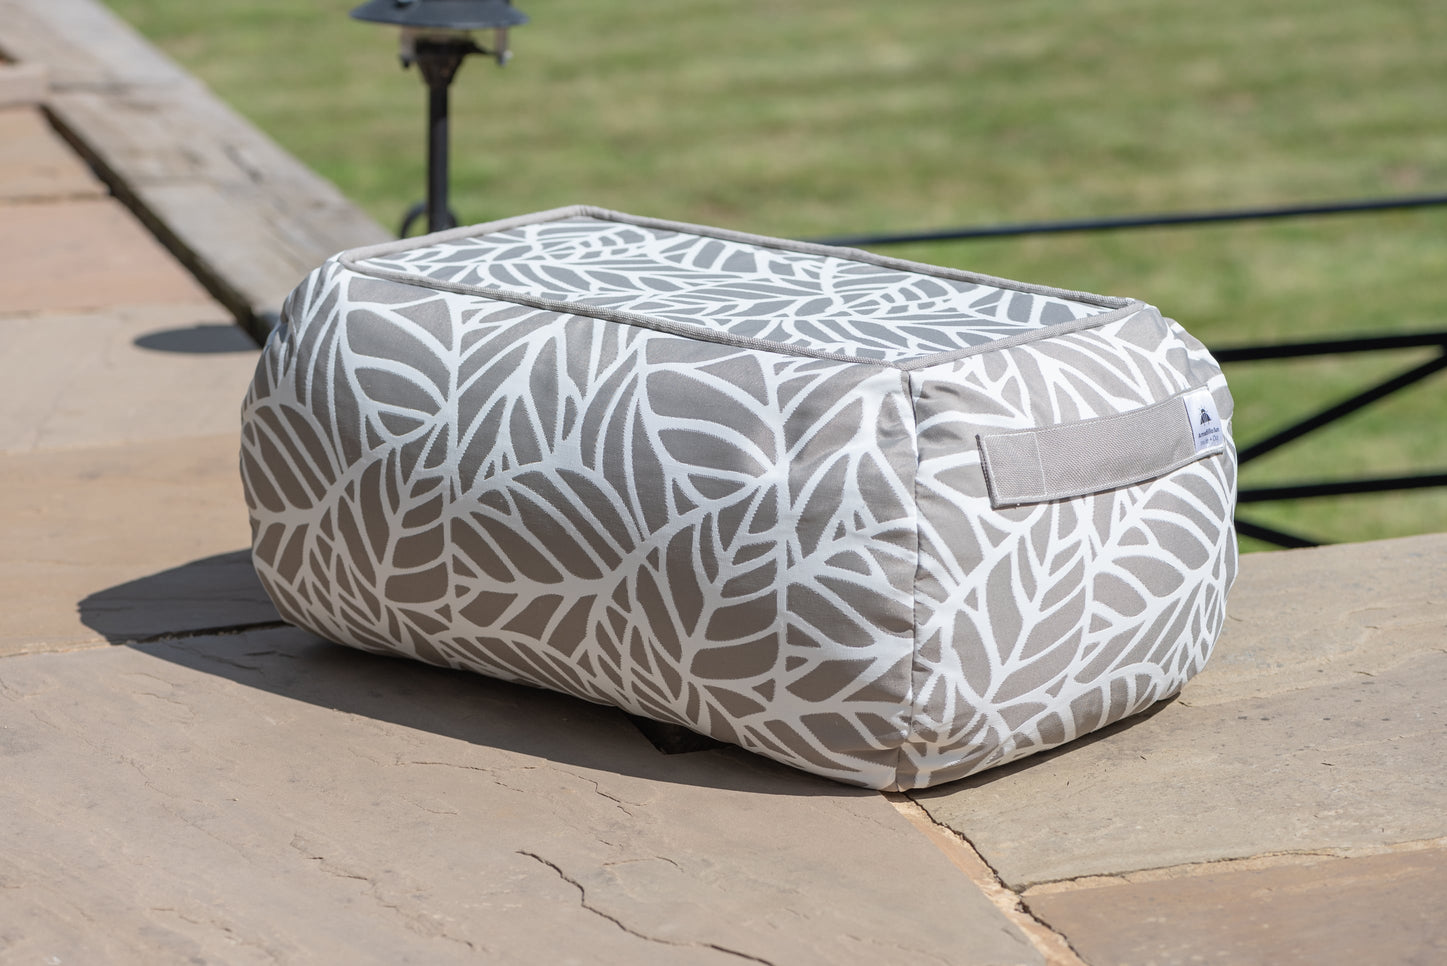 Armadillo Sun bean bag table in neutral pumice and white palm pattern